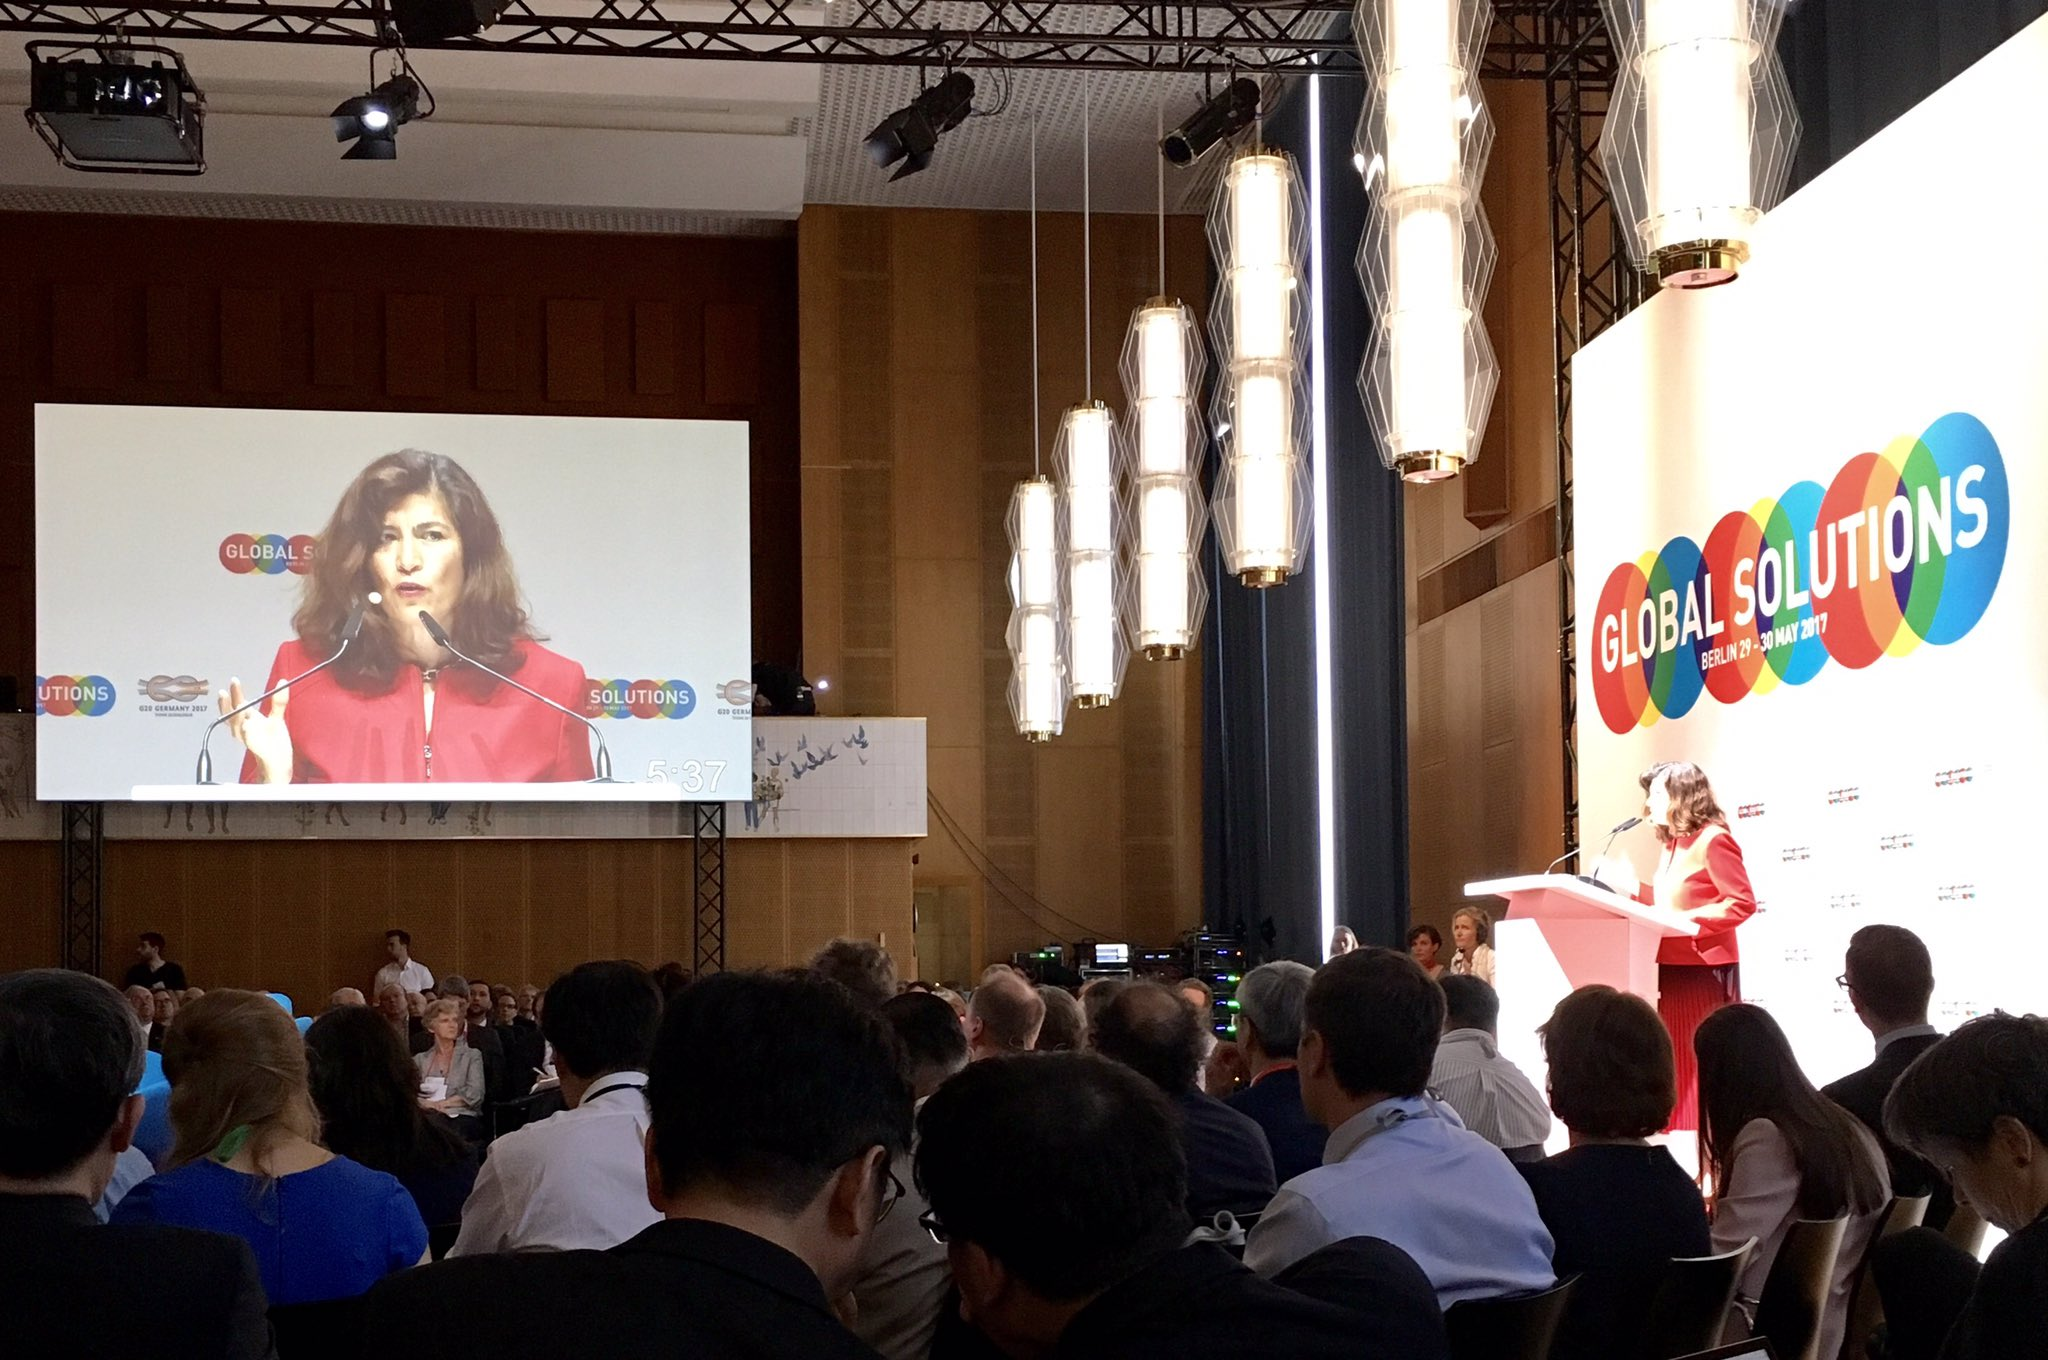 Gabriela Ramos #OECD calls for a change in the growth model to ensure that no one is left behind. #SDG is the roadmap #T20Germany https://t.co/SZ5vRT92Ue